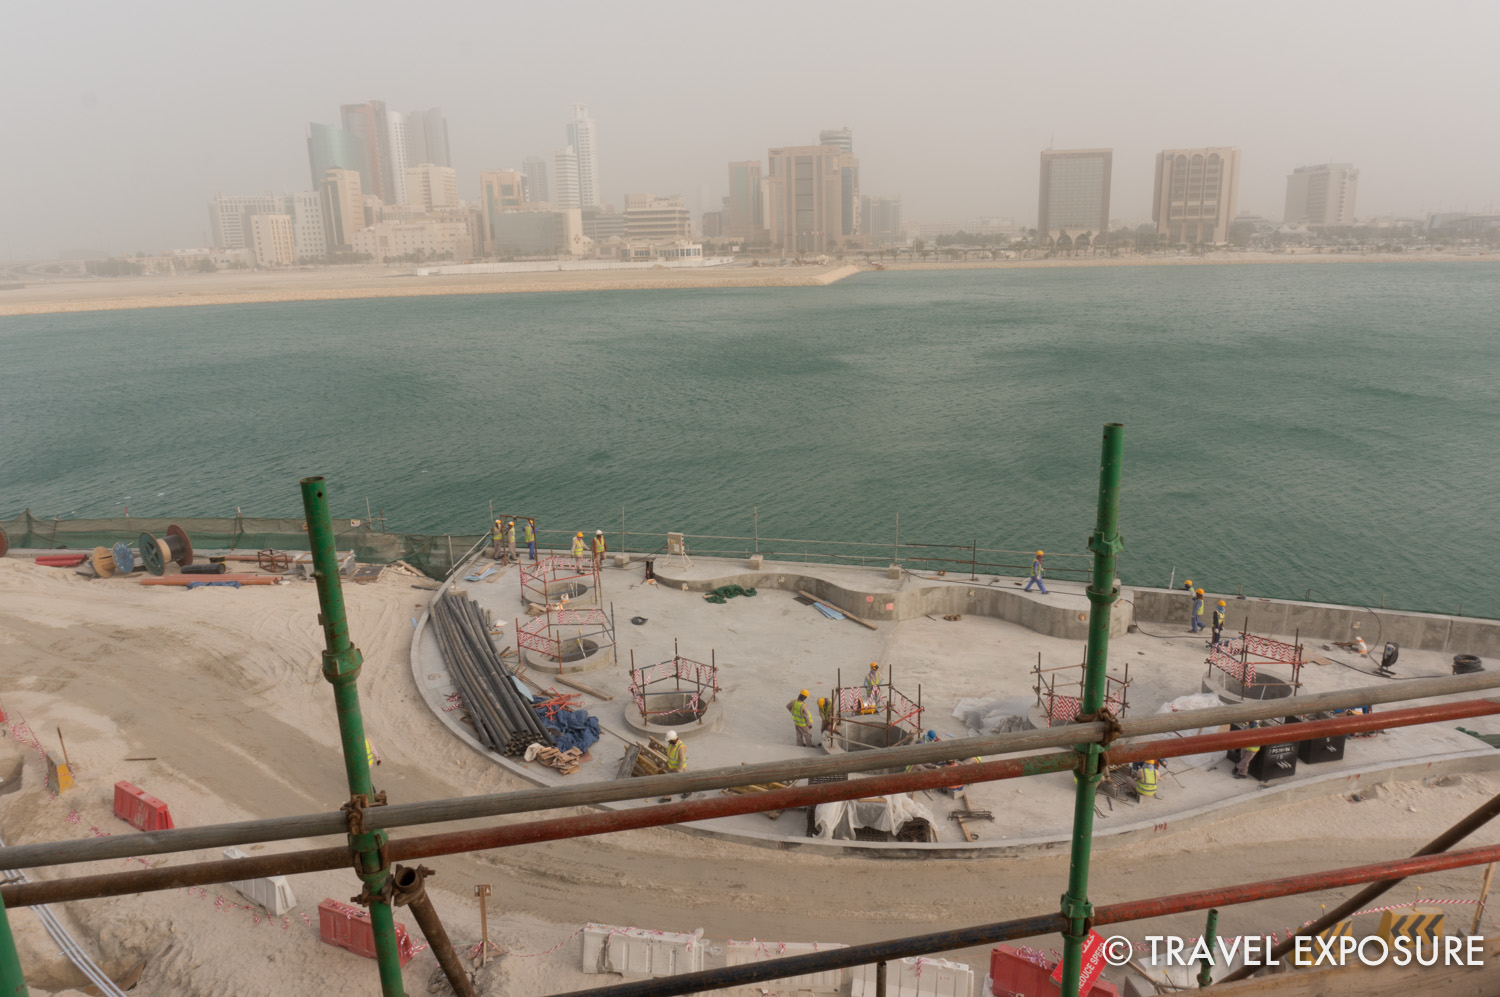 In the middle of one of the newest reclaimed islands in Bahrain is the upcoming Four Seasons Hotel. Our friend Brian is the on-site architect overseeing the design and construction and gave us a tour. (Visibility not great due to a sand storm that day!)